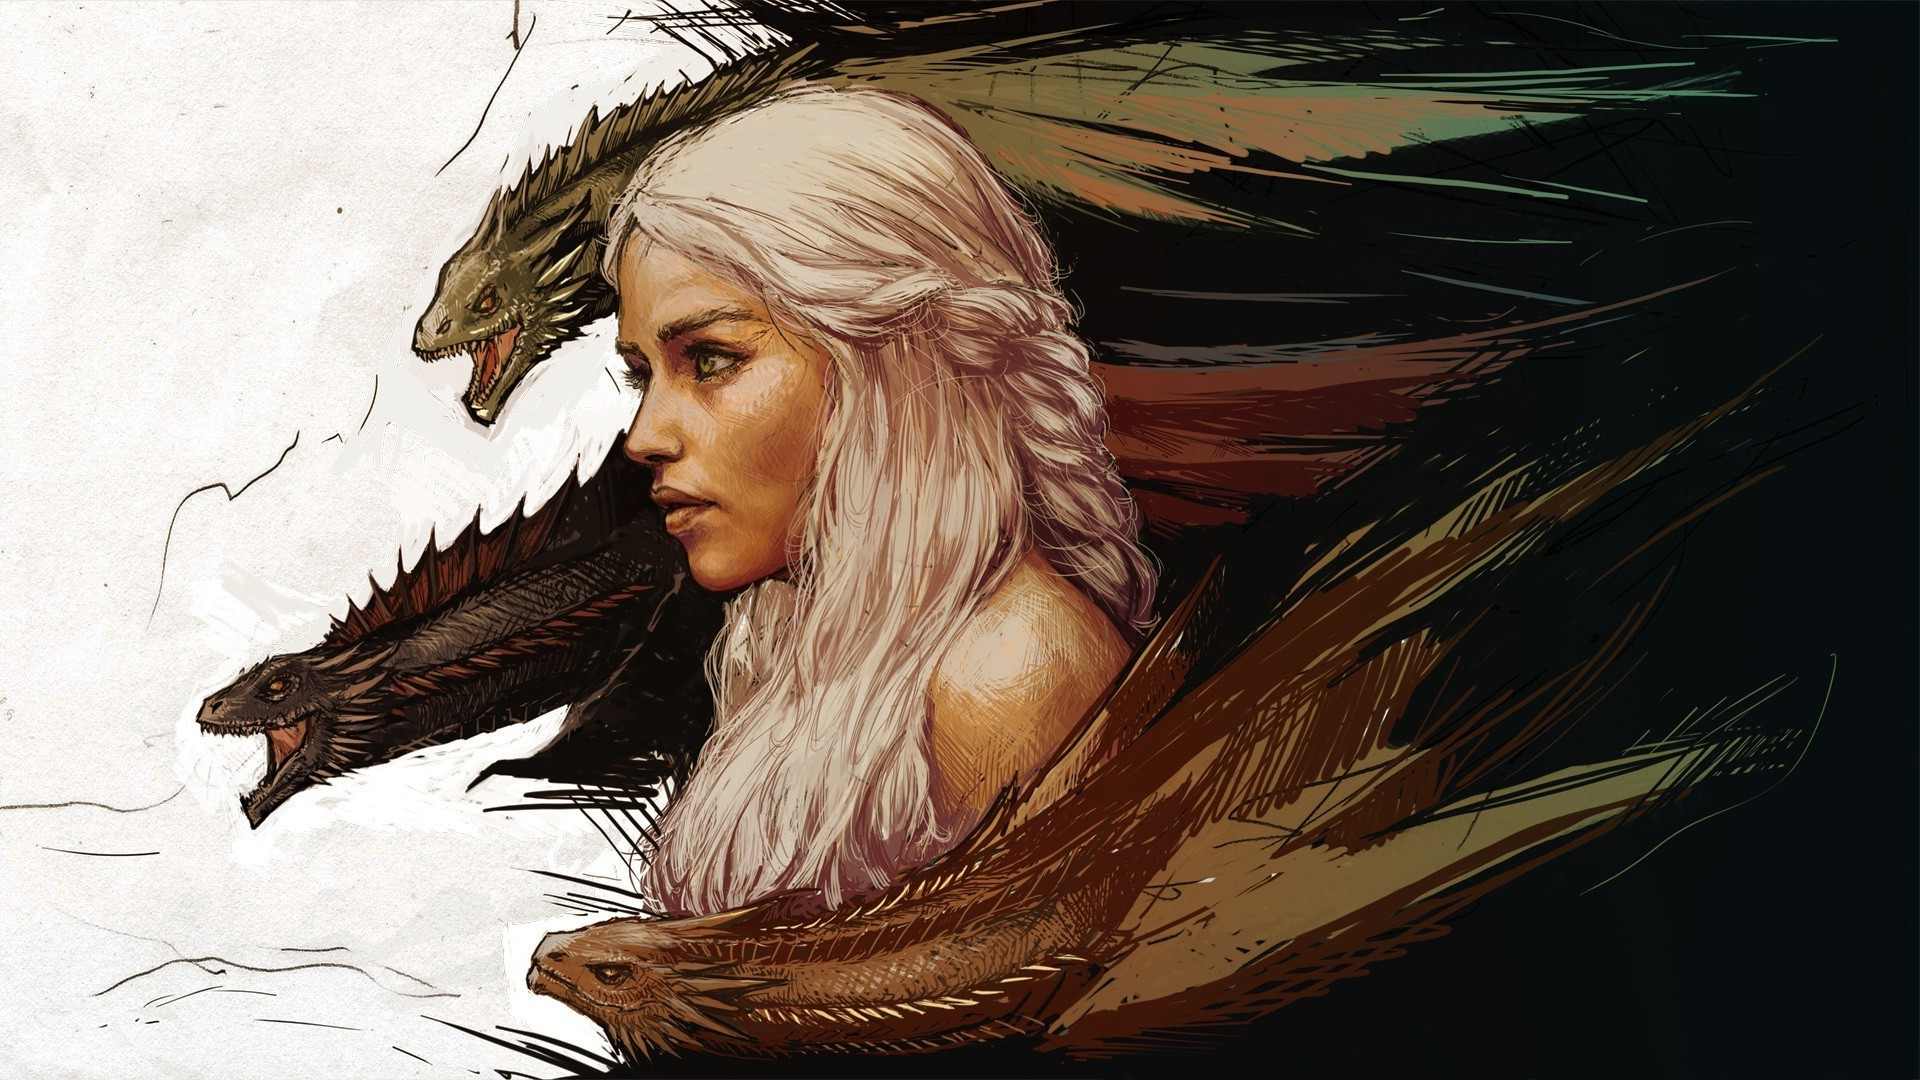 A Song Of Ice And Fire, Anime, White Hair, Daenerys Targaryen, Women,  Dragon, Game Of Thrones Wallpapers HD / Desktop and Mobile Backgrounds